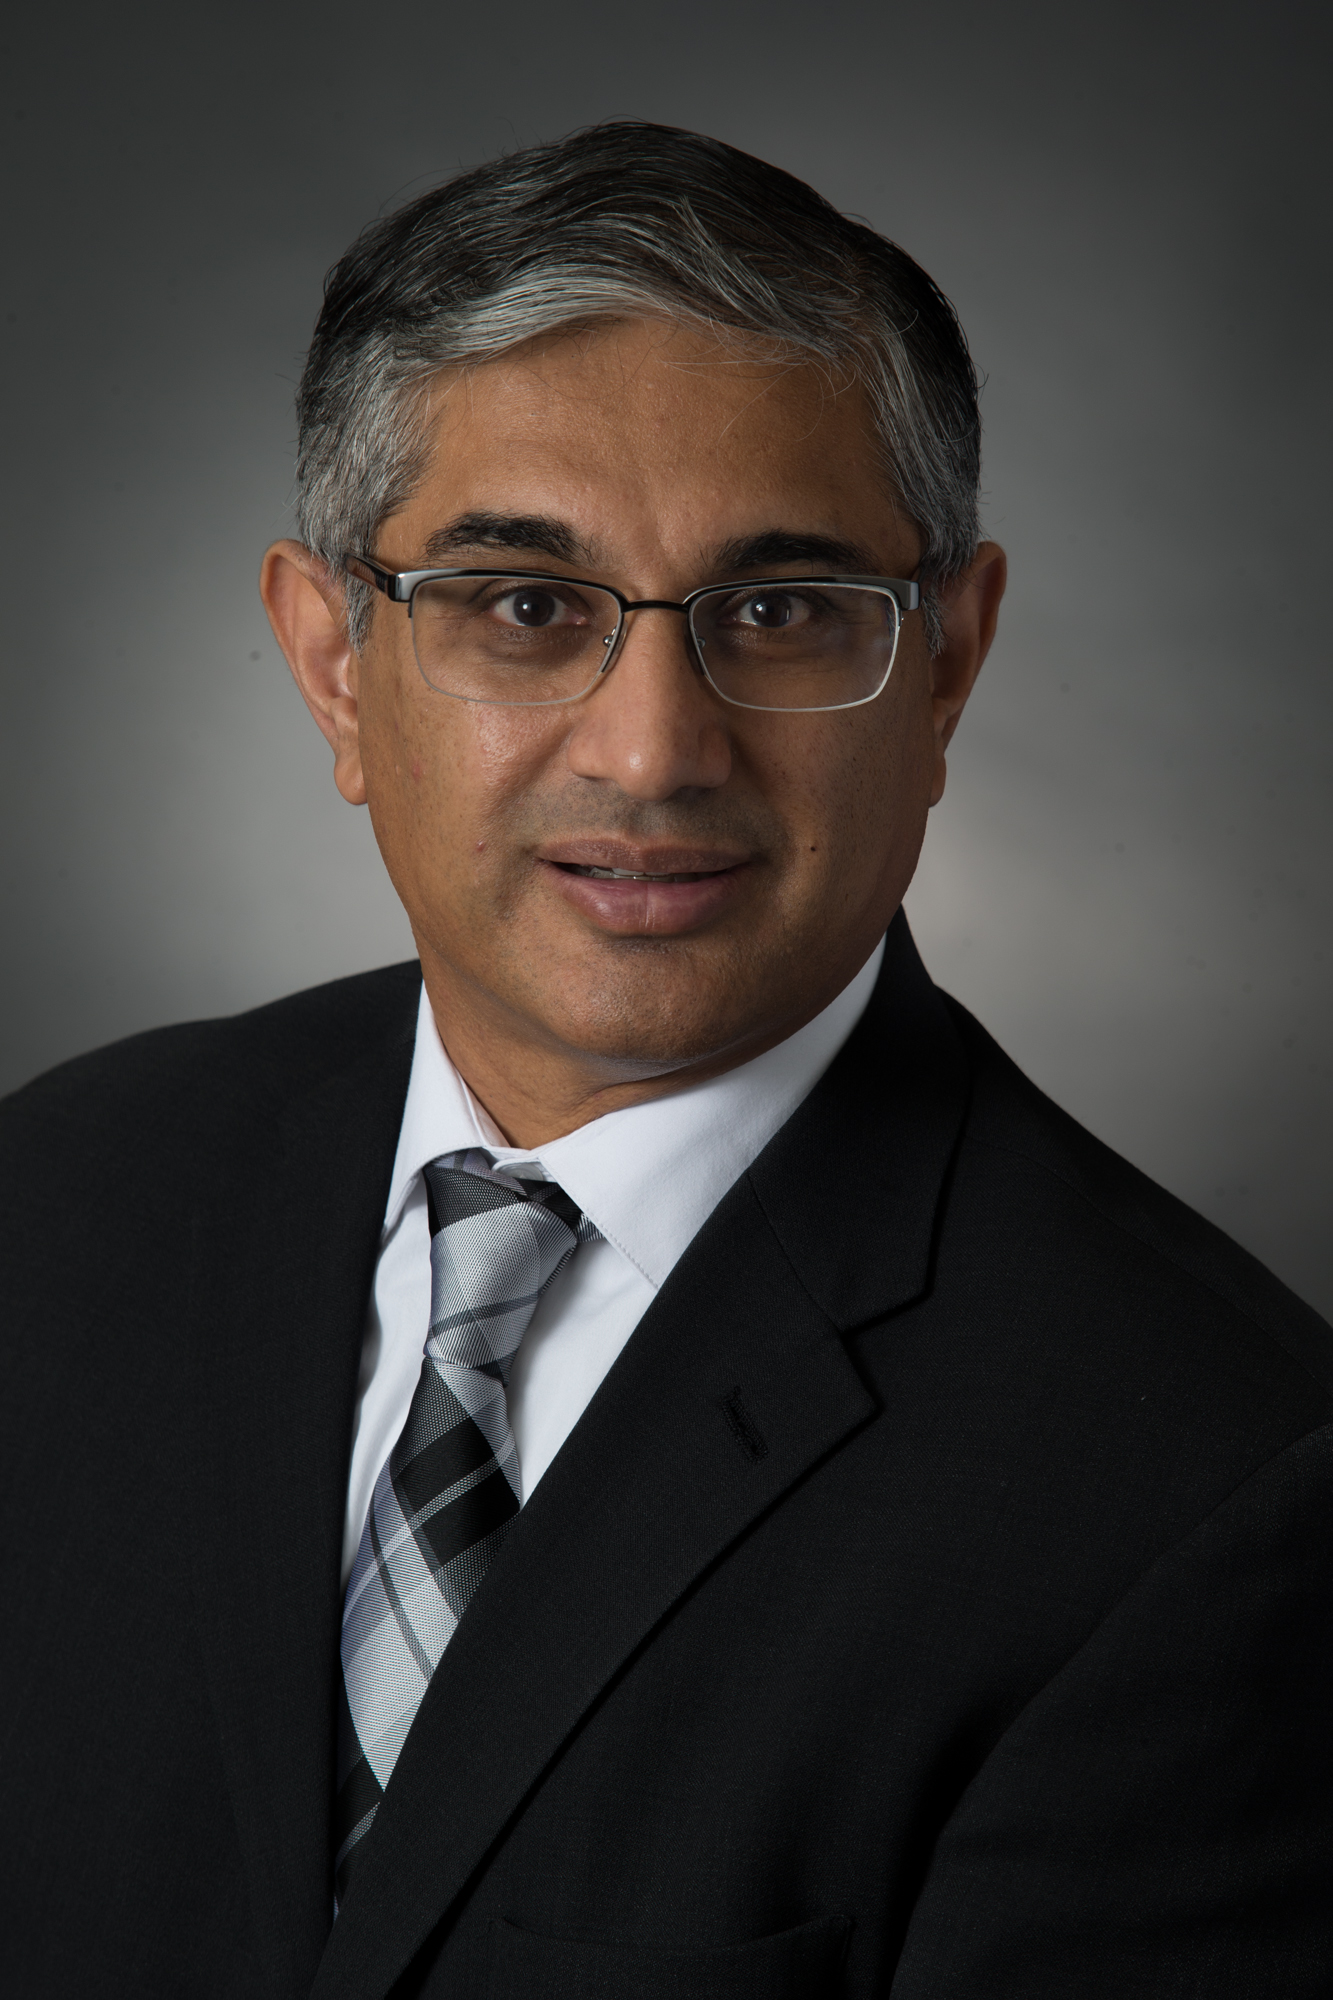 Hershey Real Estate Agent and Owner Ajay Patel